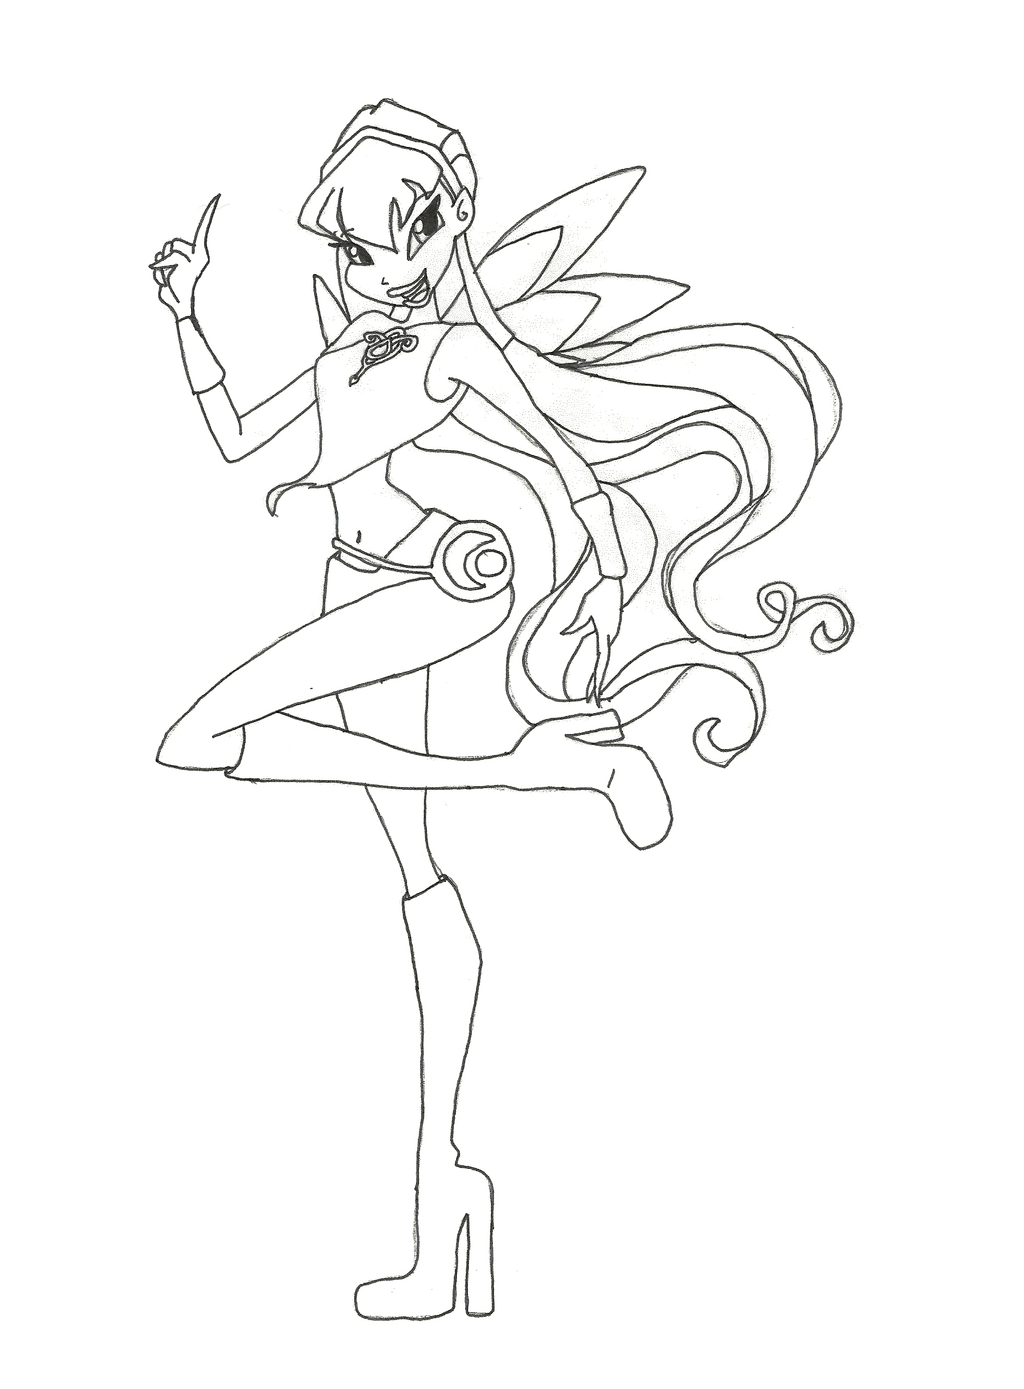 winx club stella coloring pages winx club charmix stella coloring page by winxmagic237 on